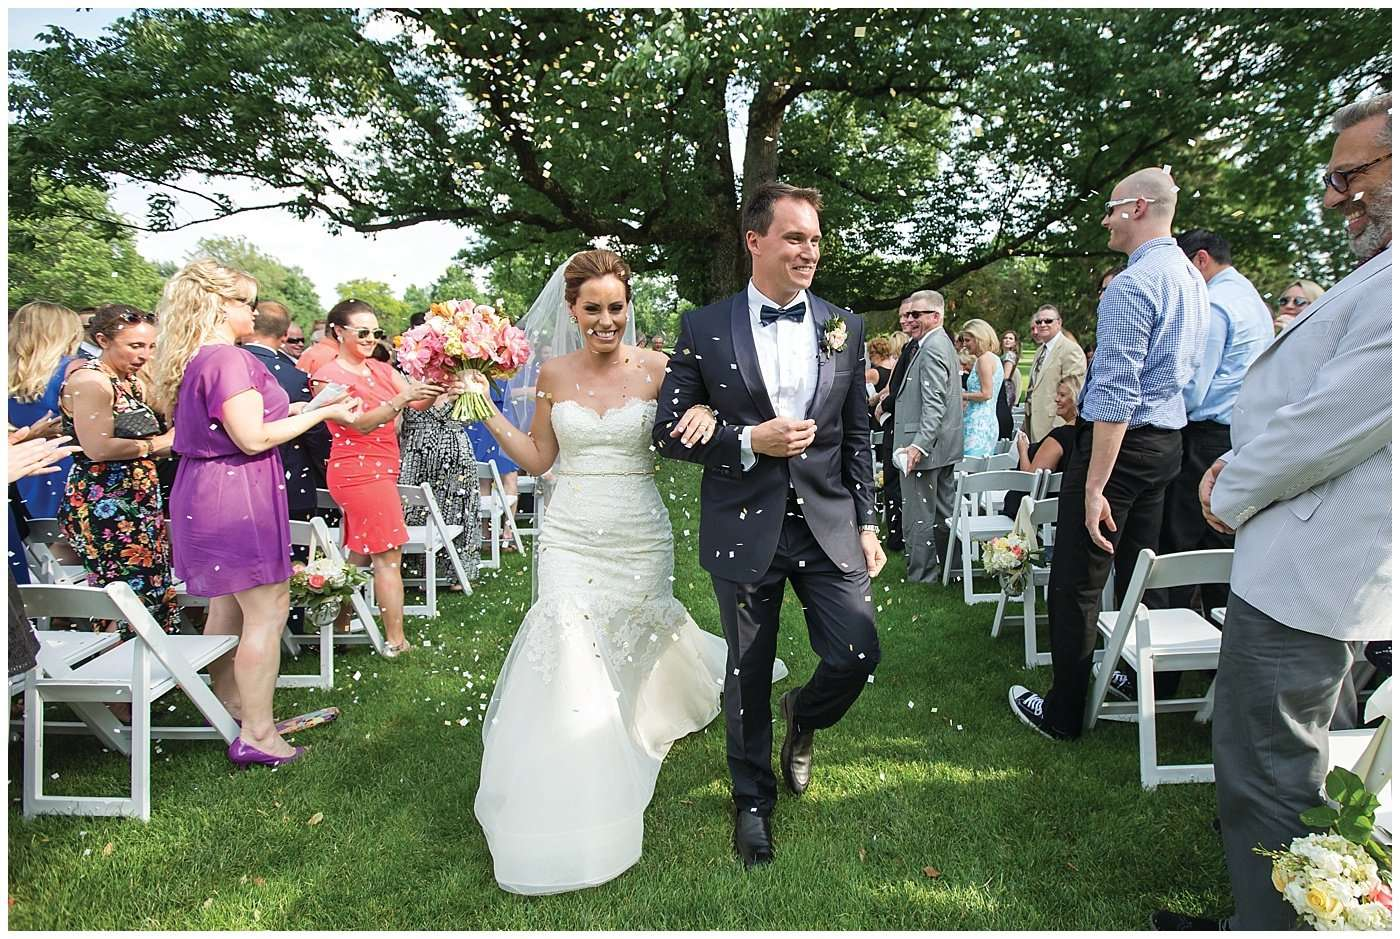 Kim & Lee | A Summer Wedding at Brookside Country Club 136